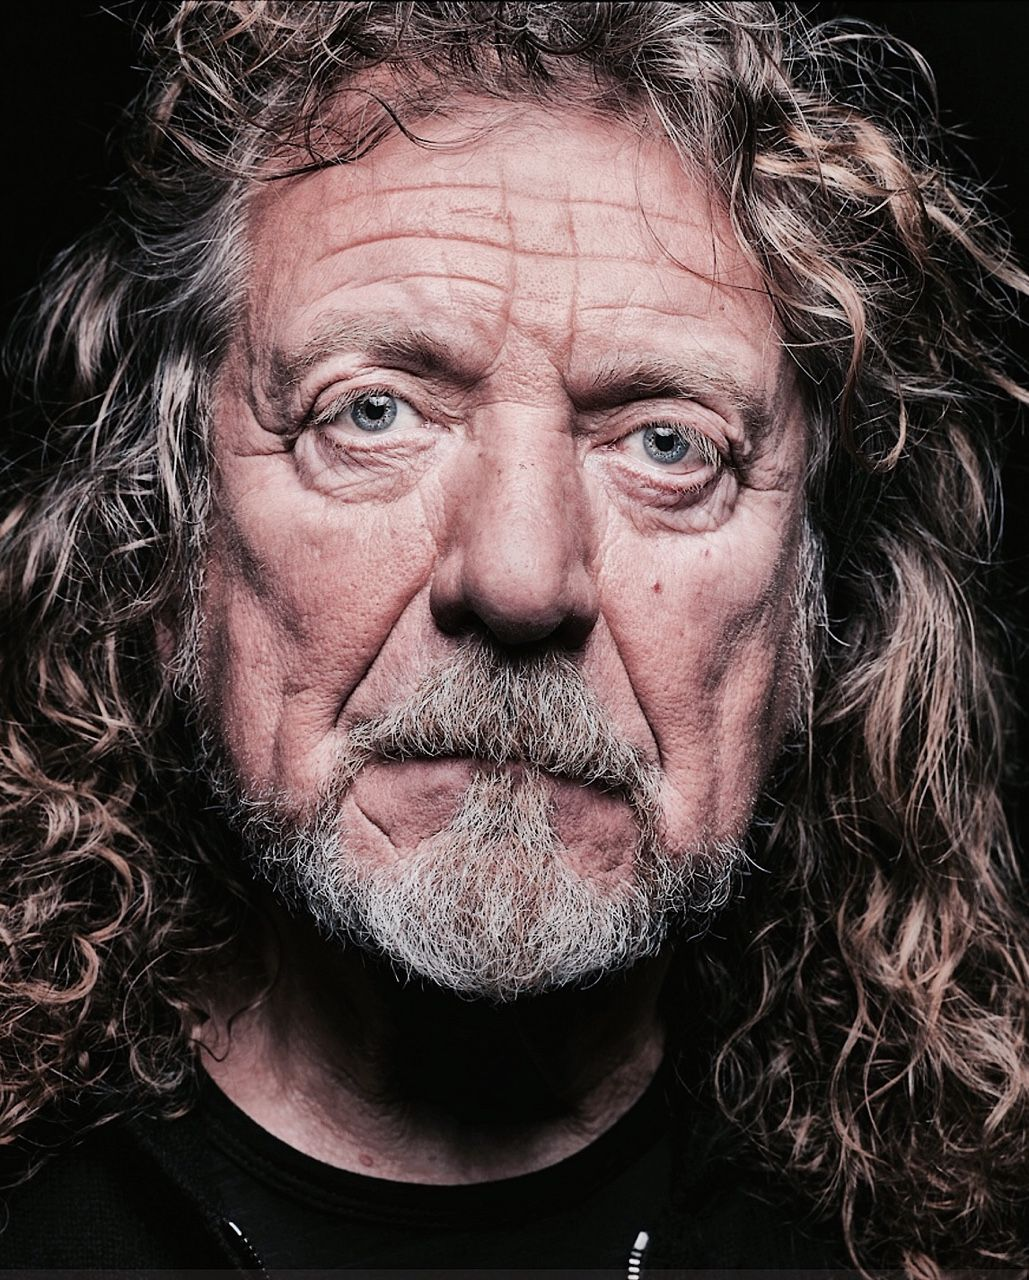 robert plant photographed recently - 736×915